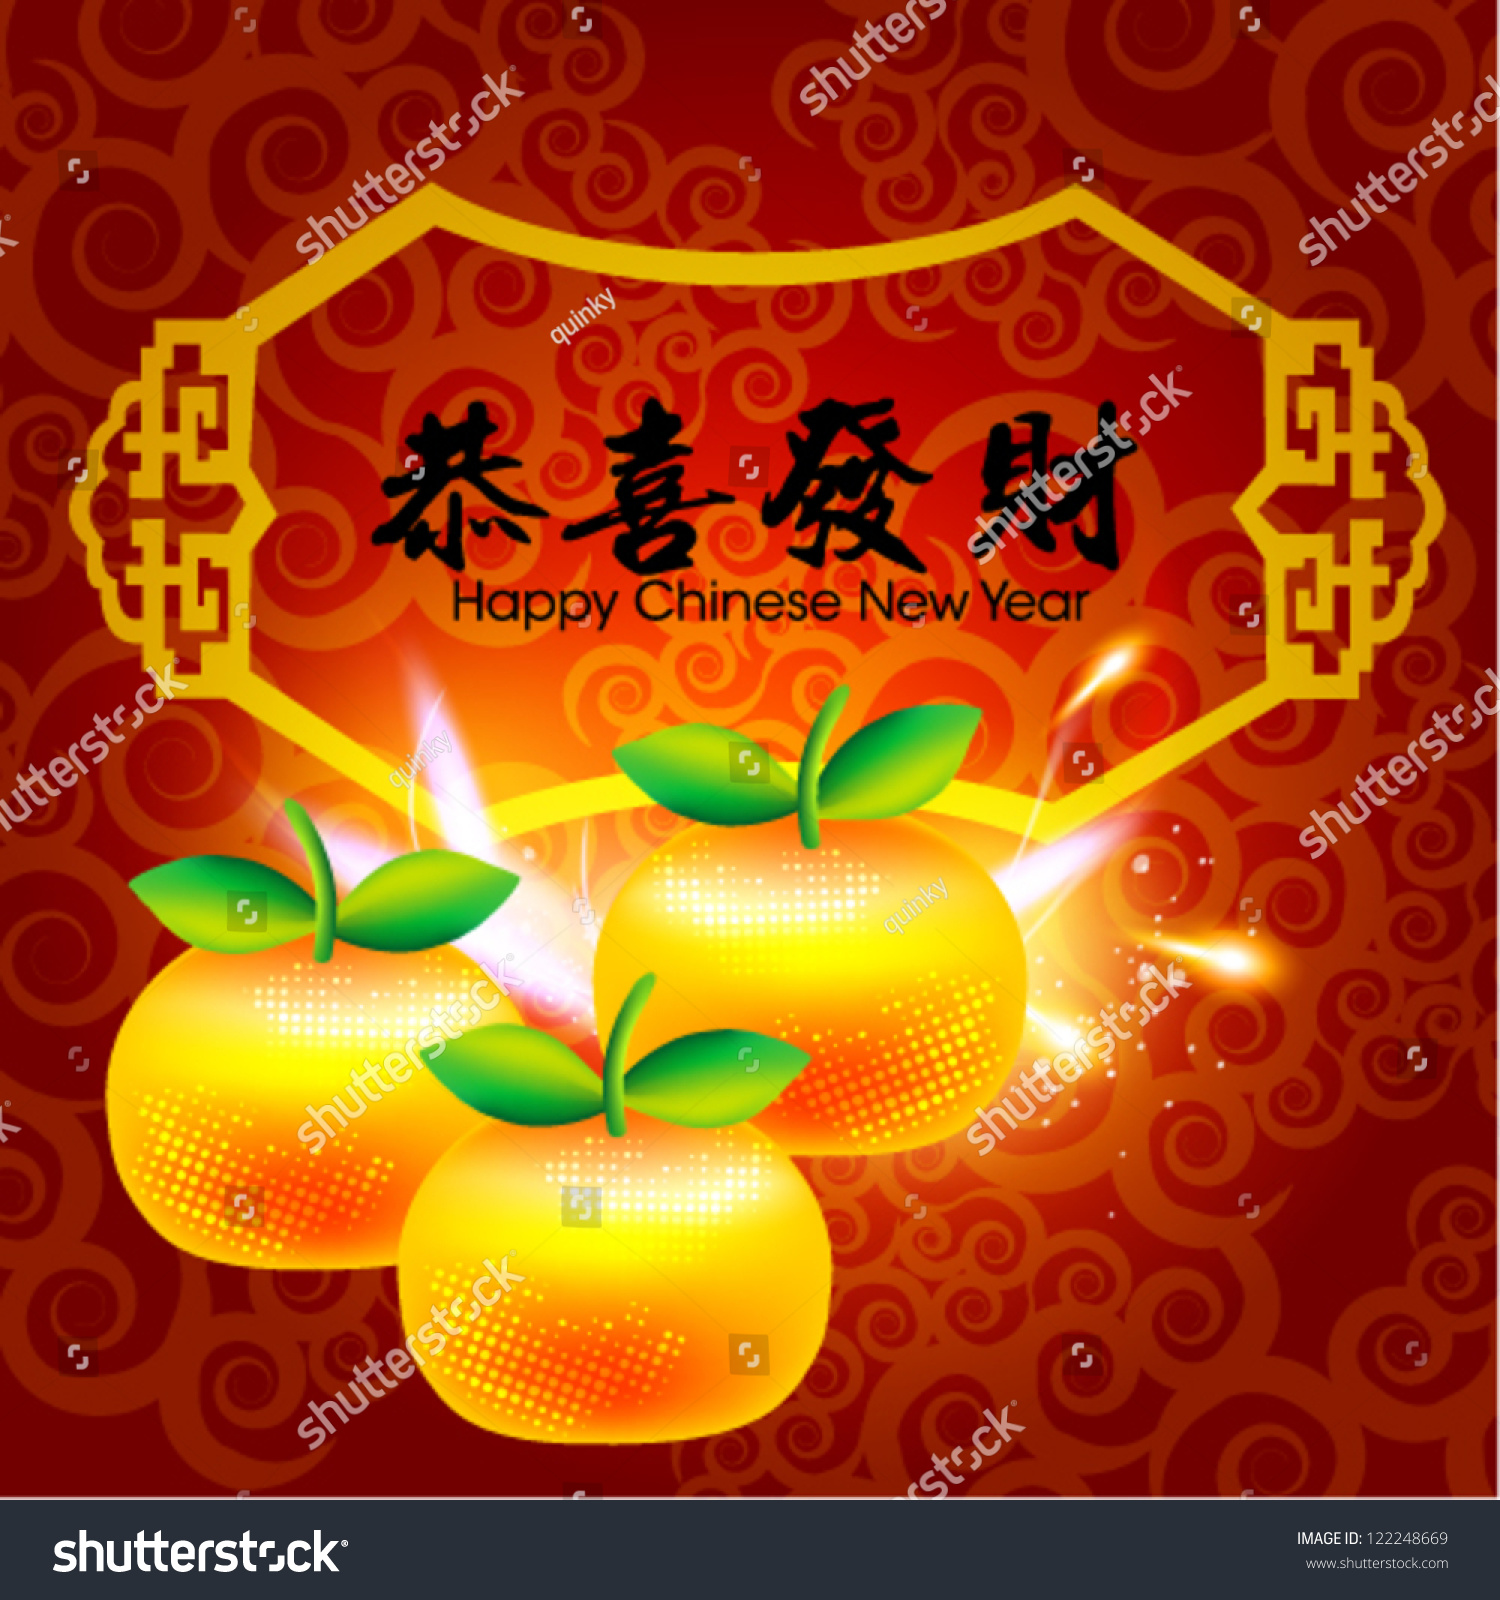 happy chinese new year card vector design